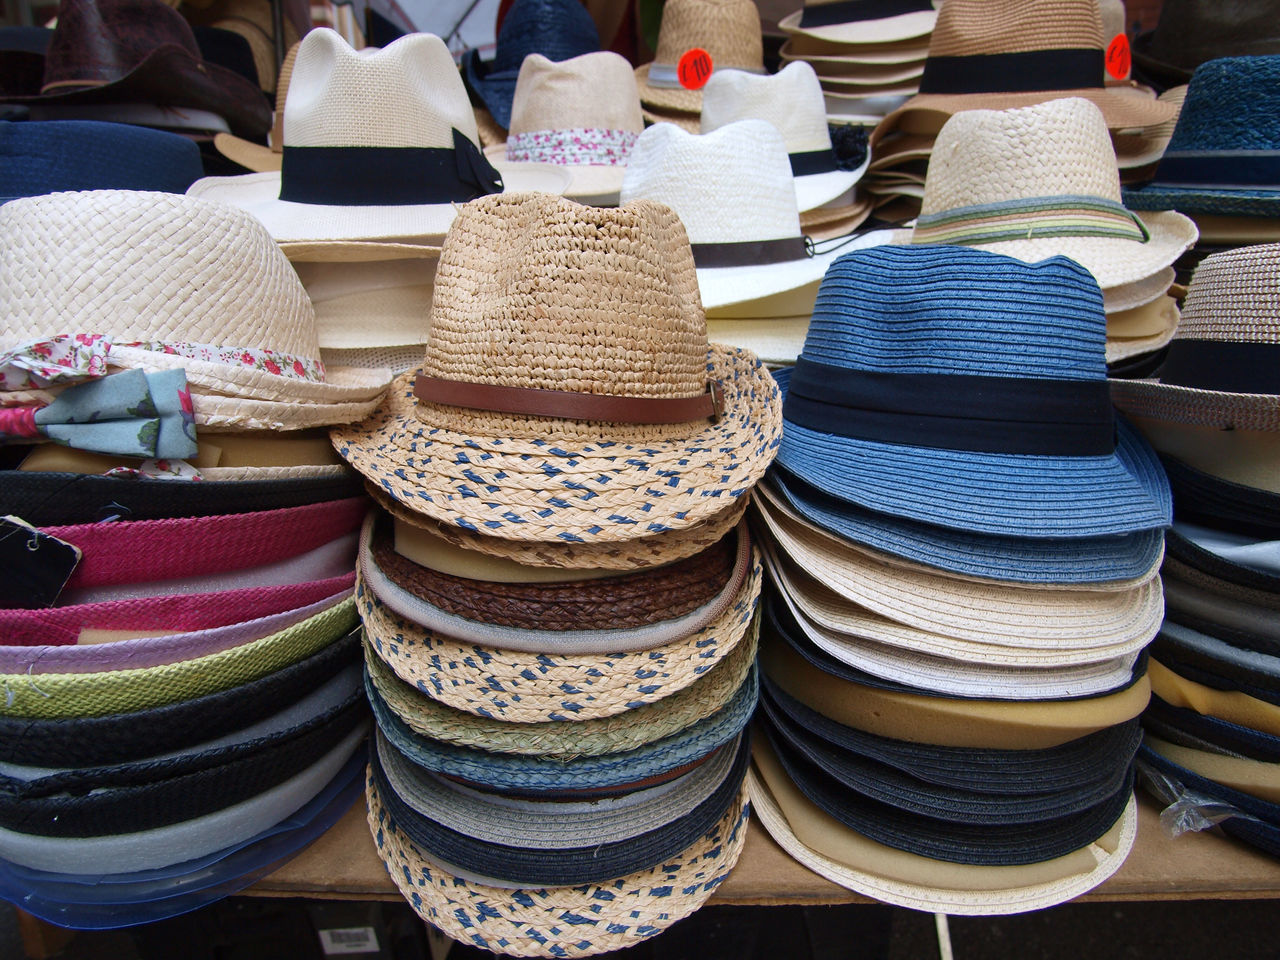 for sale, retail, large group of objects, market, choice, arrangement, hat, variation, still life, market stall, stack, collection, multi colored, clothing, no people, store, shopping, small business, abundance, retail display, sale, order, consumerism